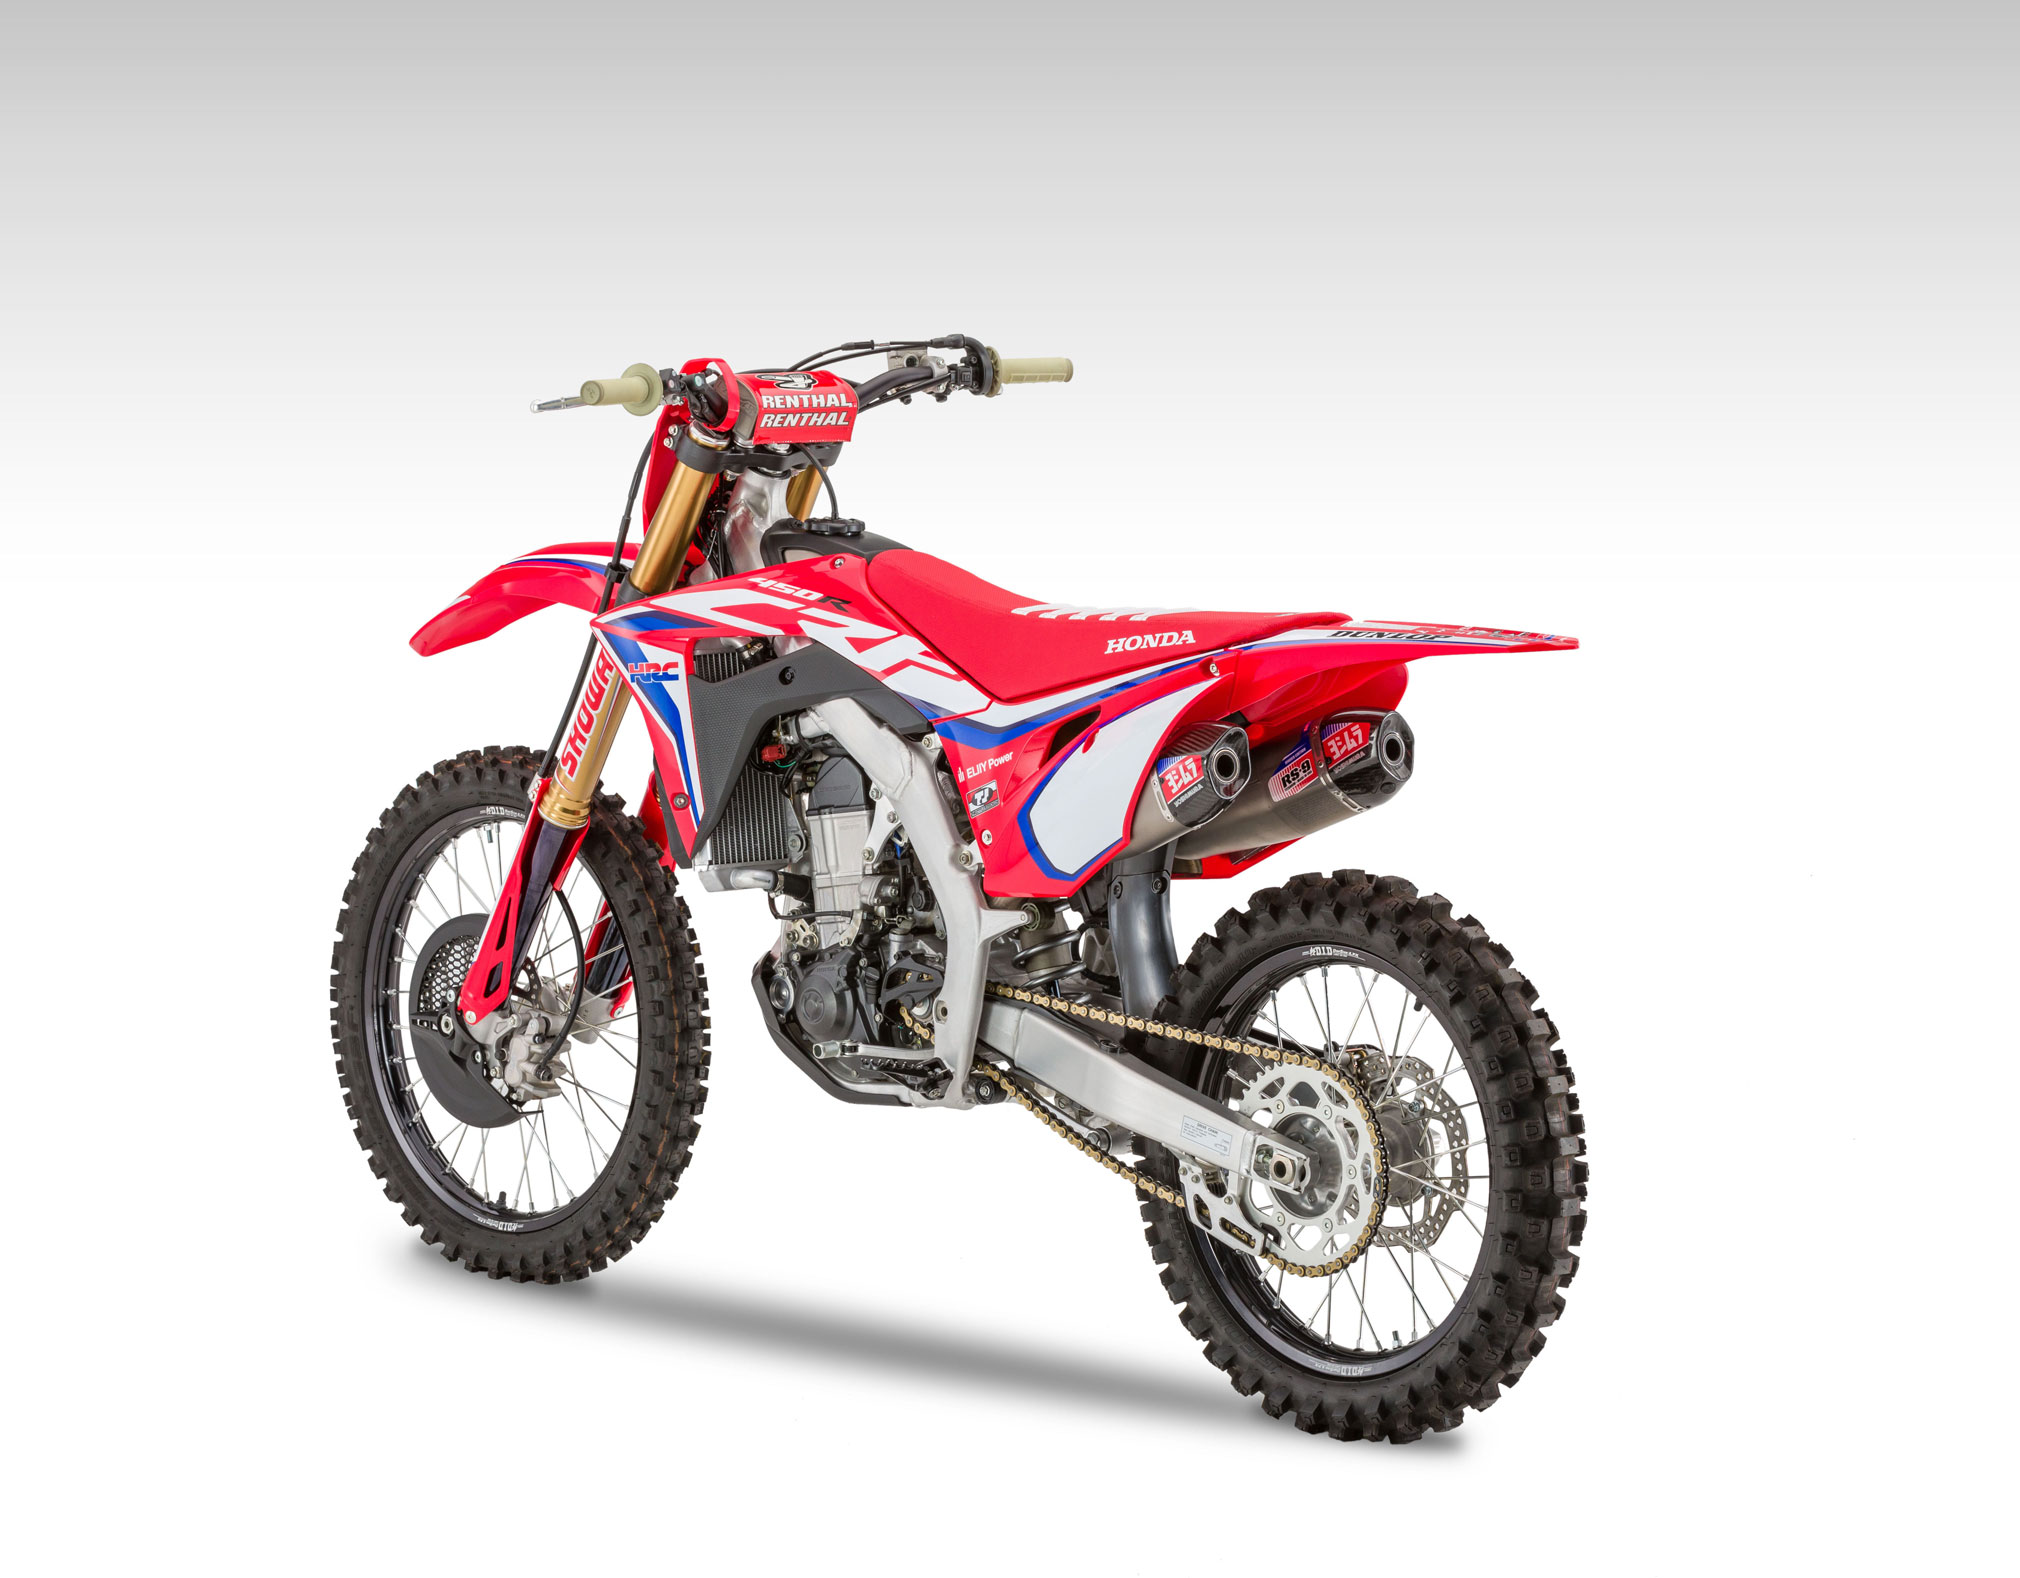 Best Dual Sport Motorcycle 2020.20 New 2020 Honda Motorcycles Have Arrived Total Motorcycle